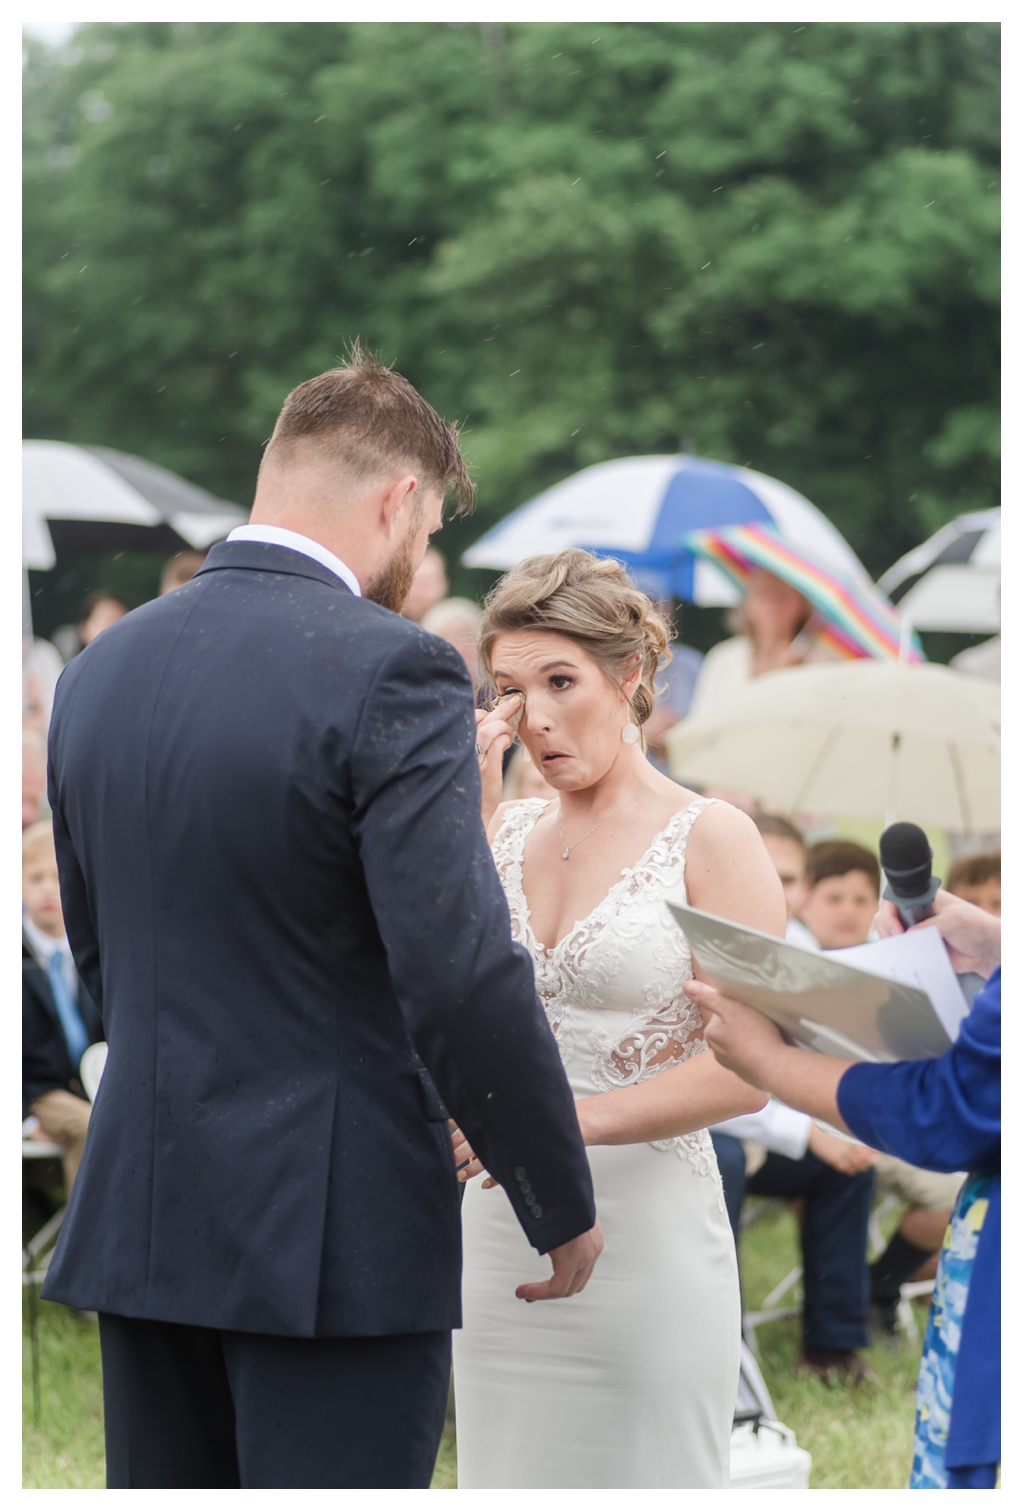 Outdoor Wedding in the Rain_1060.jpg